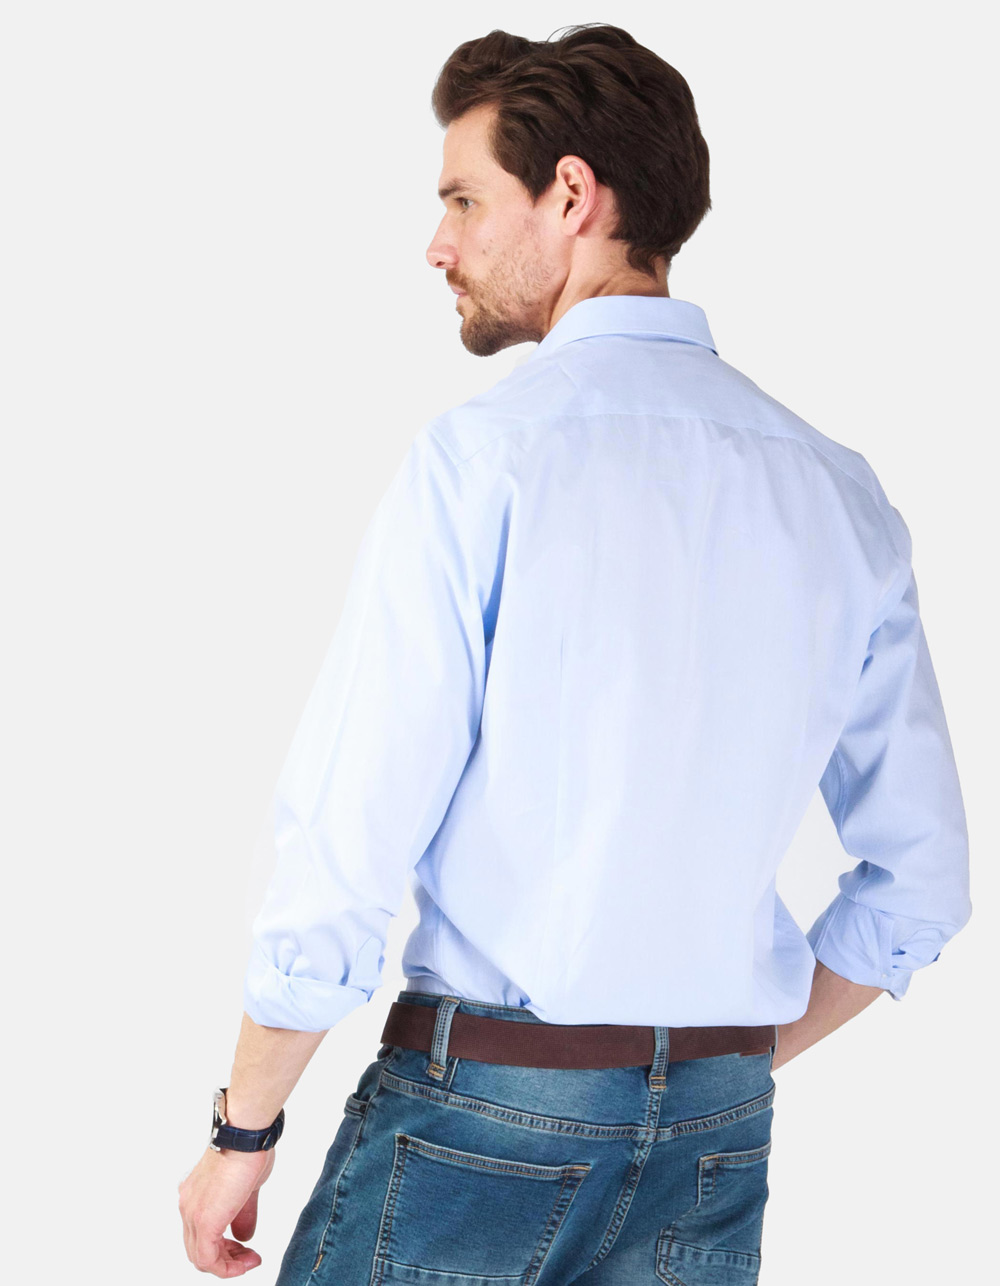 Blue plain dress shirt - Backside